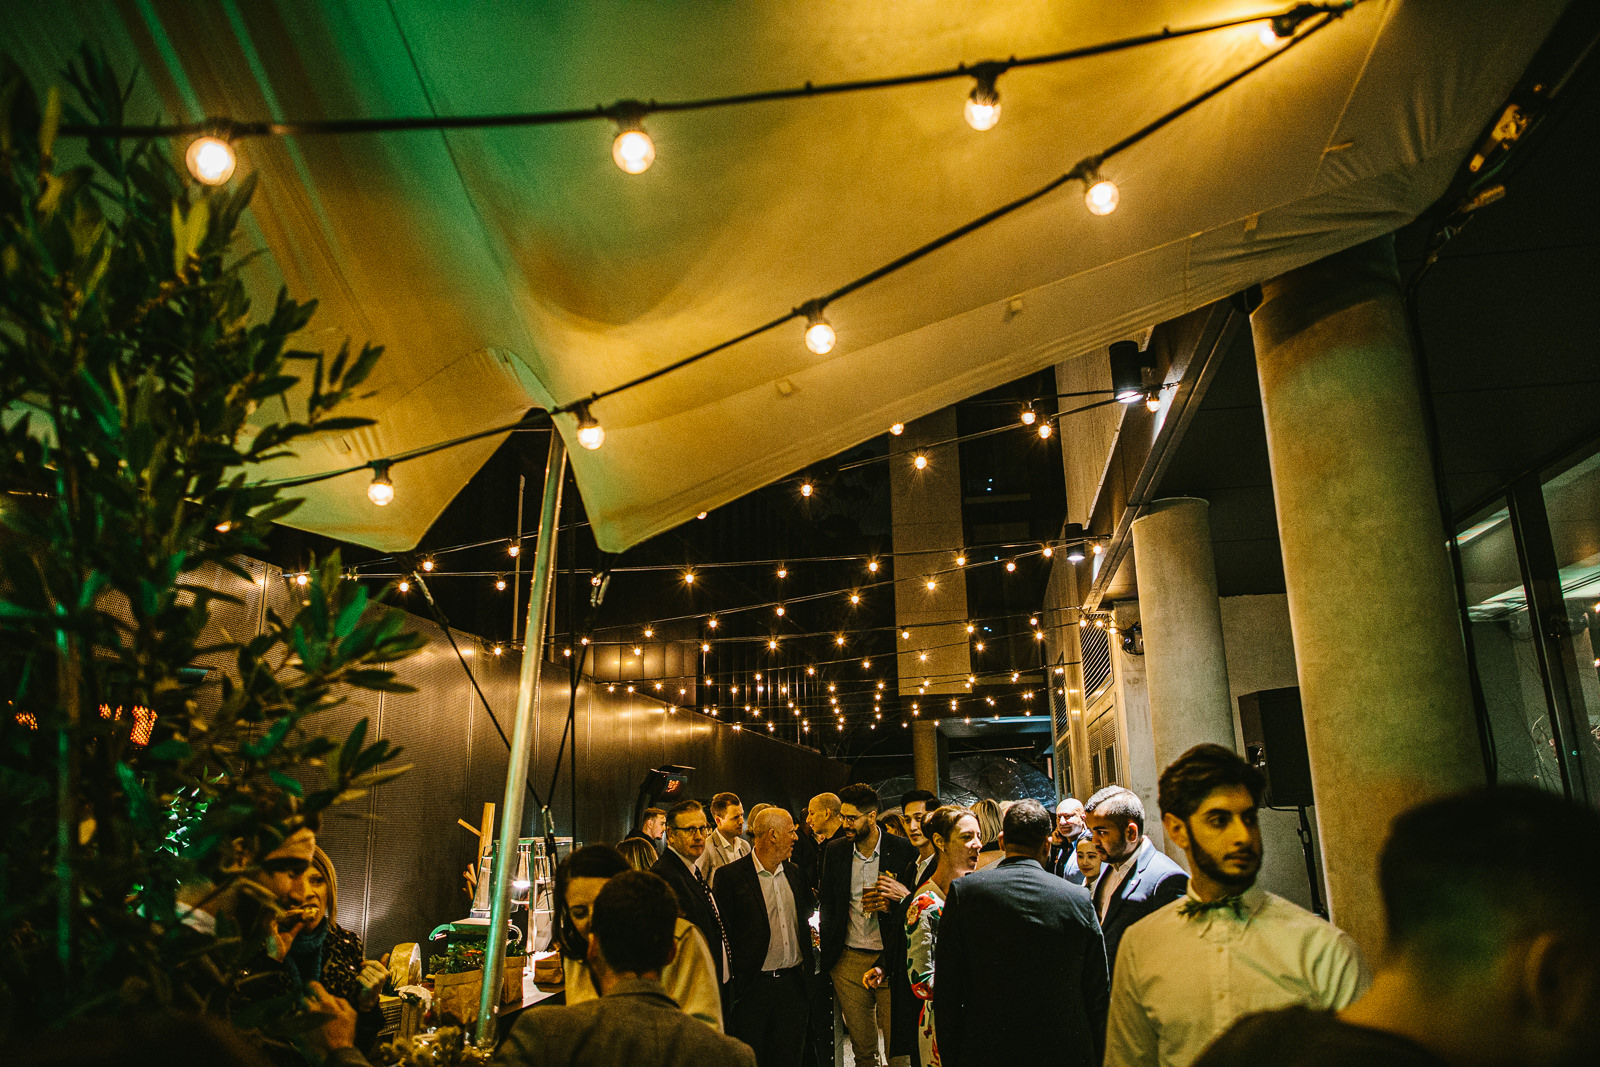 hotel event - outdoor event space for conferences in melbourne